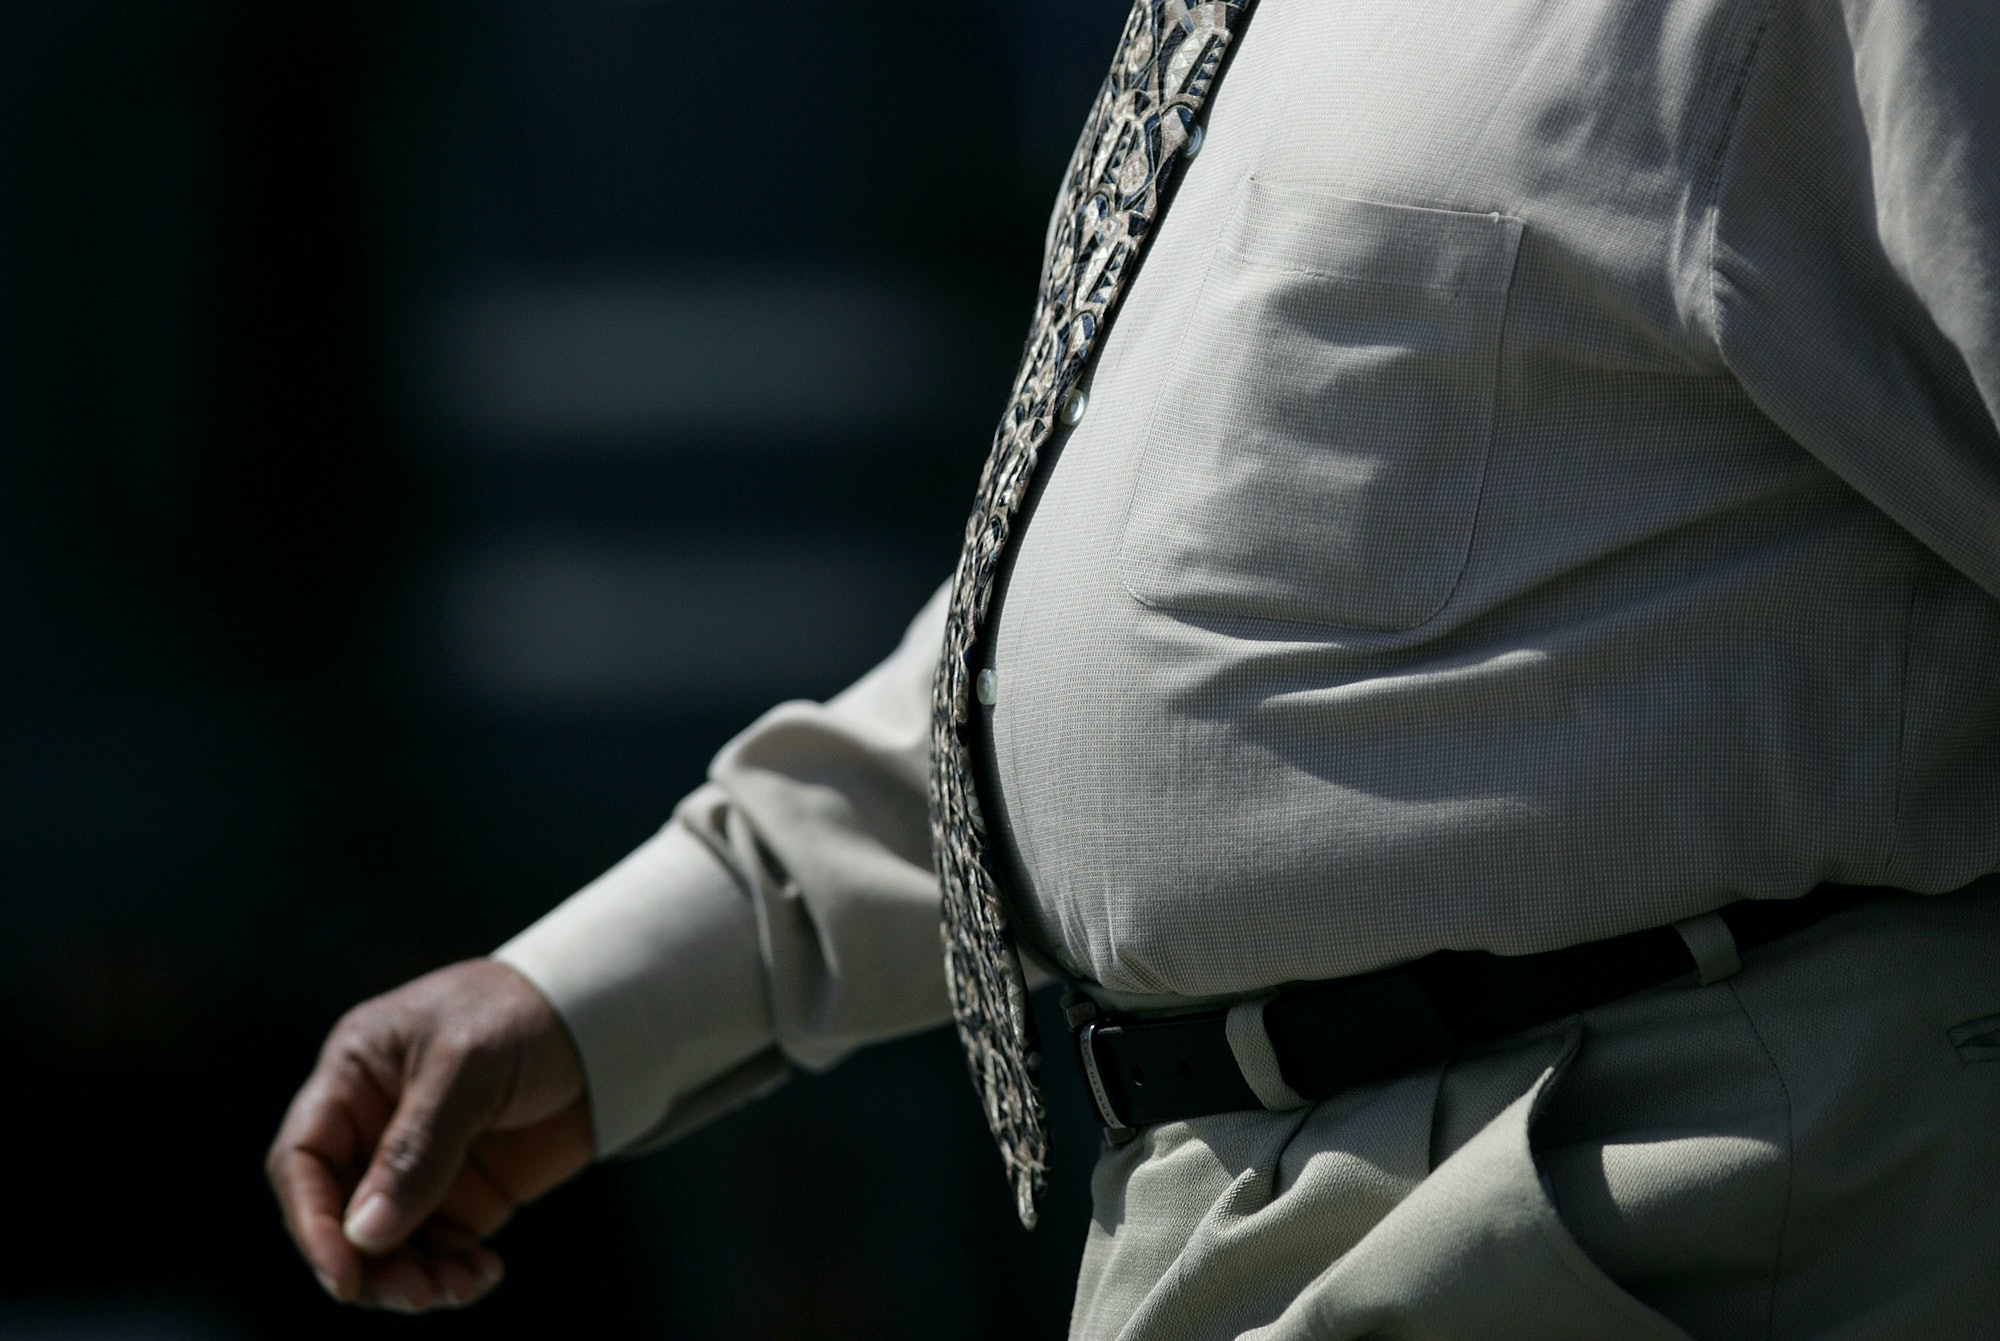 Obese people have more problems than simply body mass. Their fat can make it harder to lose weight.